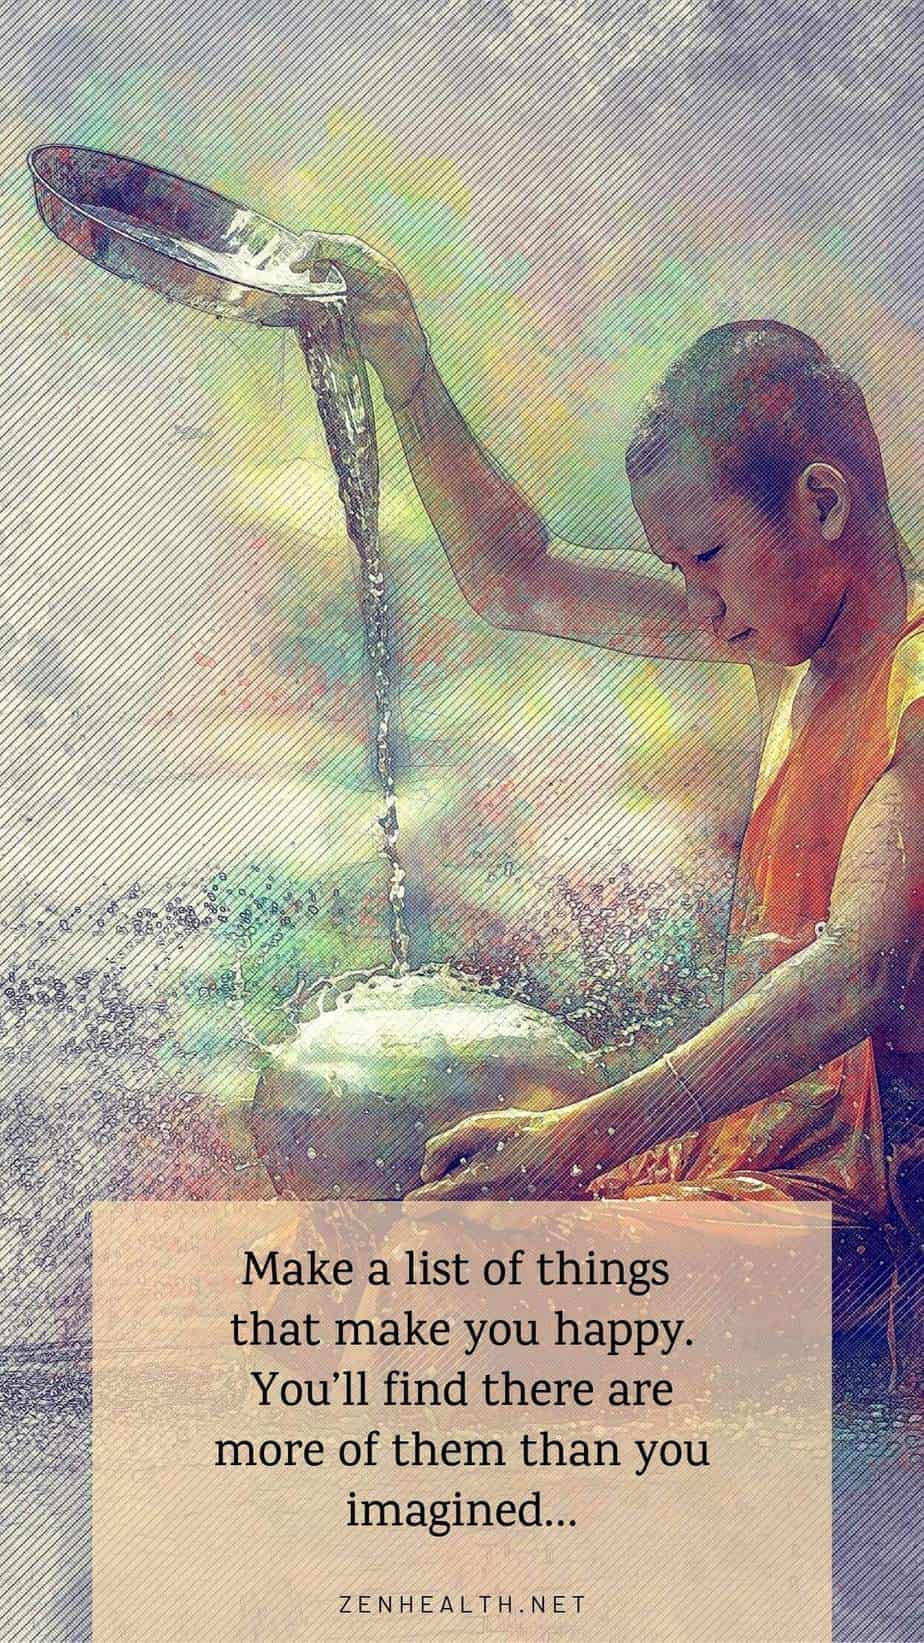 Make a list of things that make you happy. You'll find there are more of them than you imagined...